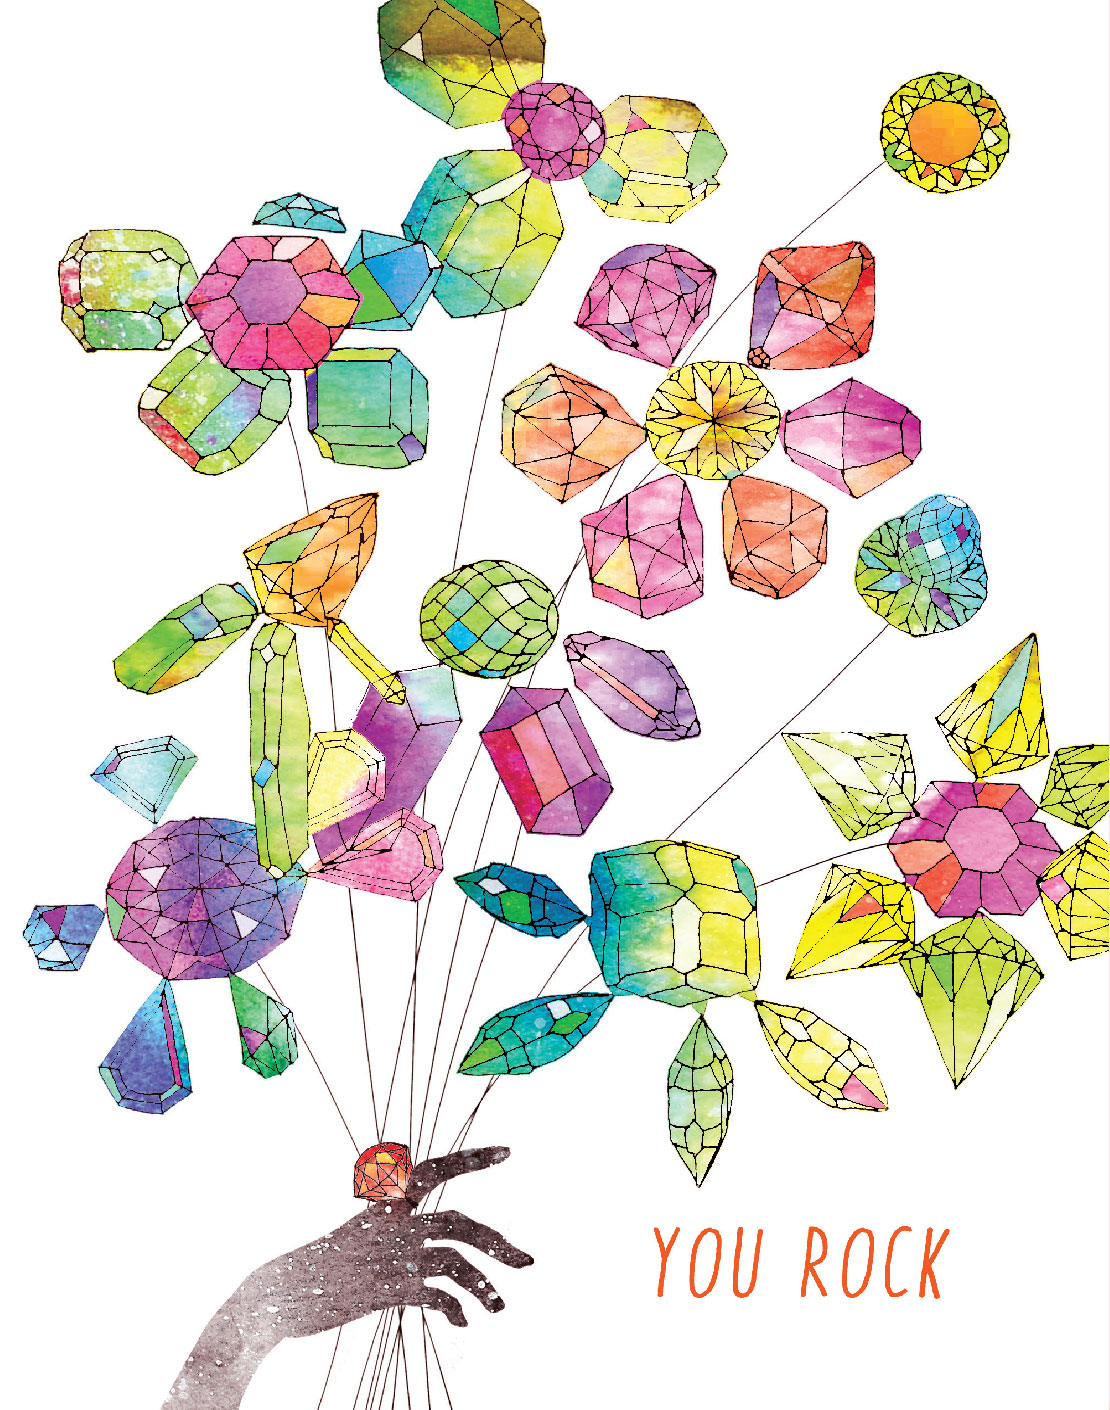 Rock Bouquet is composed of the rarest of jeweled plants, artisanally gathered in the faraway unspoiled fields of fairytales. All to highlight your recipient's superiority and shine. Rock this Masha D'yans all occasions greeting card.